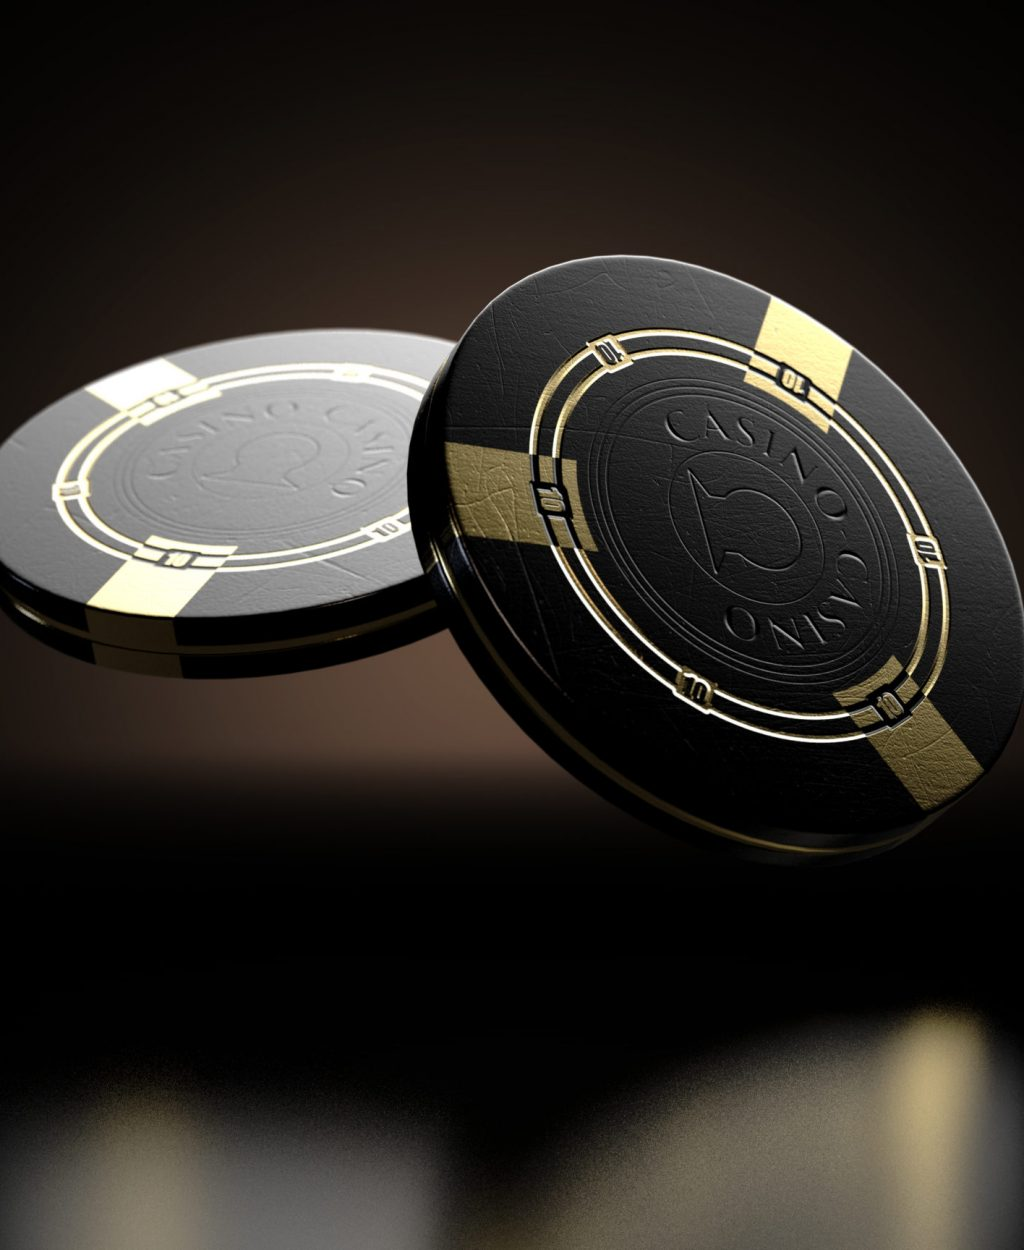 A set of two reflective black casino chips with gold markings floating in the air on a dark classy background - 3D render